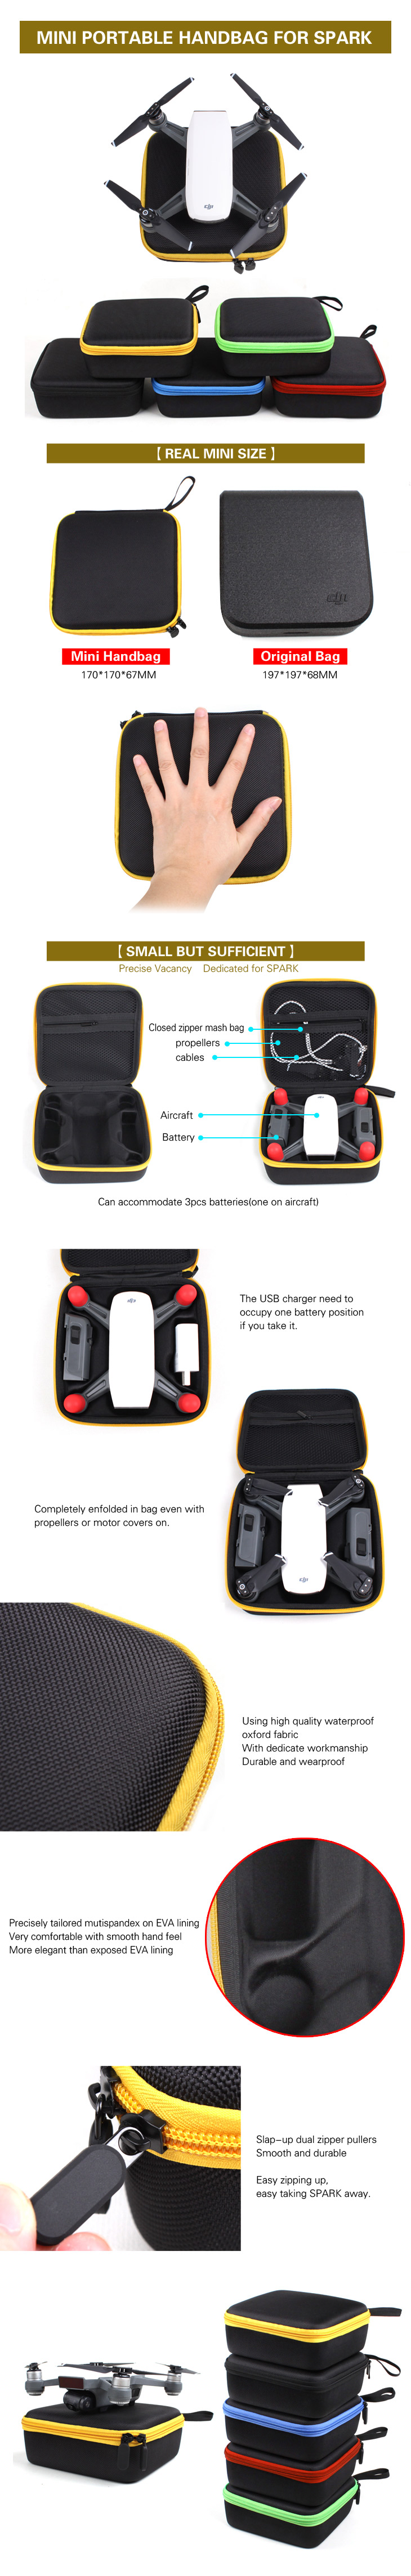 Mini Portable Handheld Bag Drone Storage Bag Carrying Bag for DJI Spark Drone Aircraft Battery F21496/7